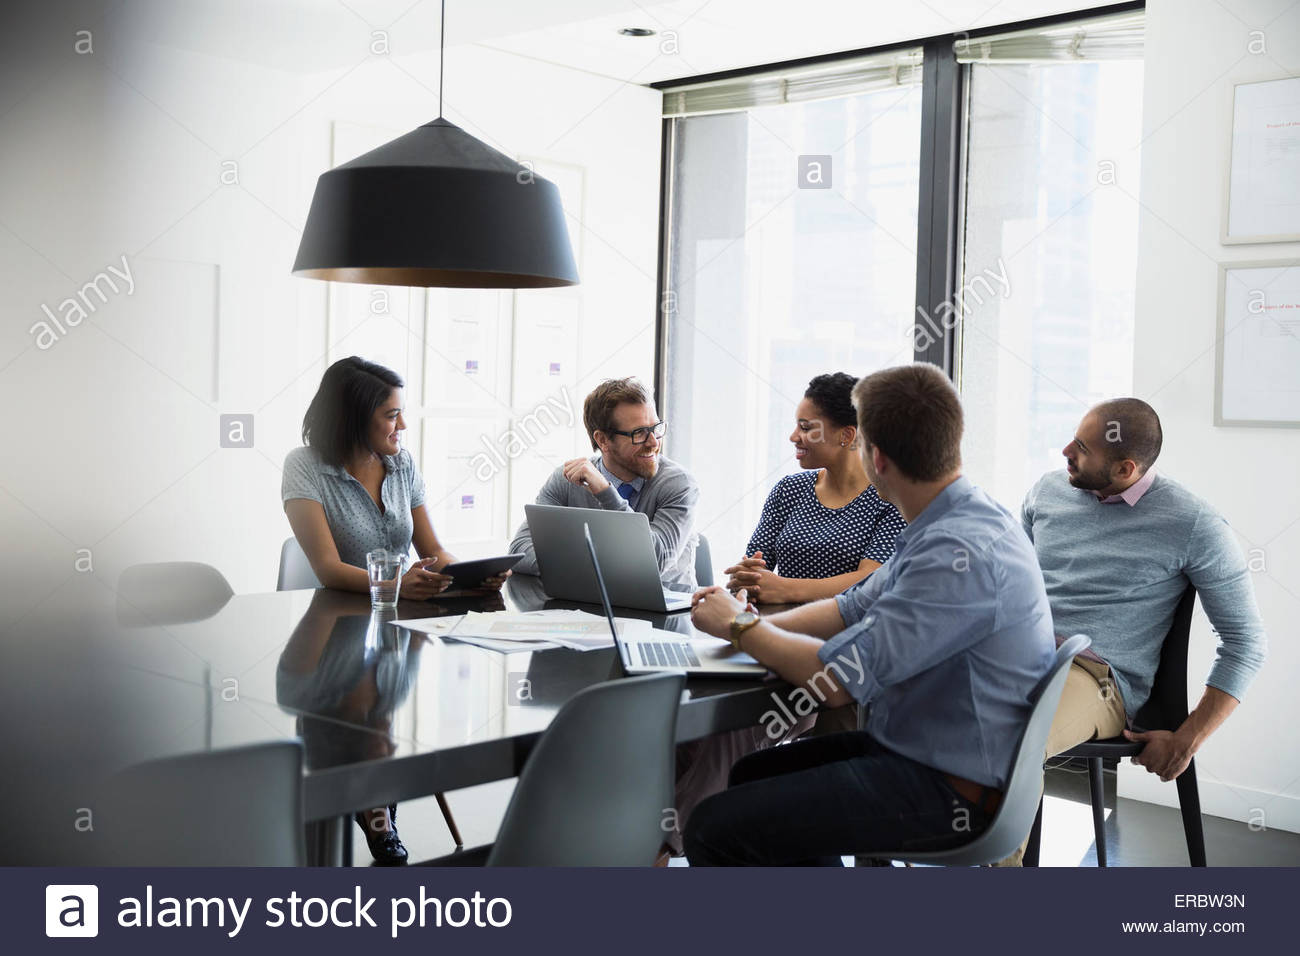 Business people talking in conference room meeting - Stock Image